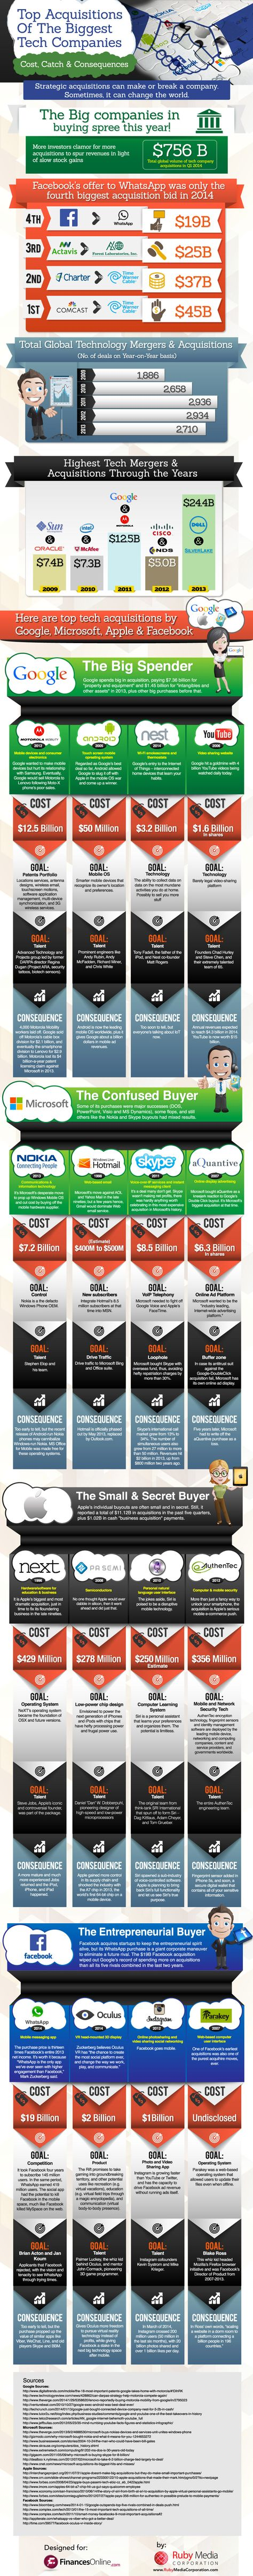 The $19 Billion WhatsApp Deal Was Big, But Not the Year's Biggest (Infographic)